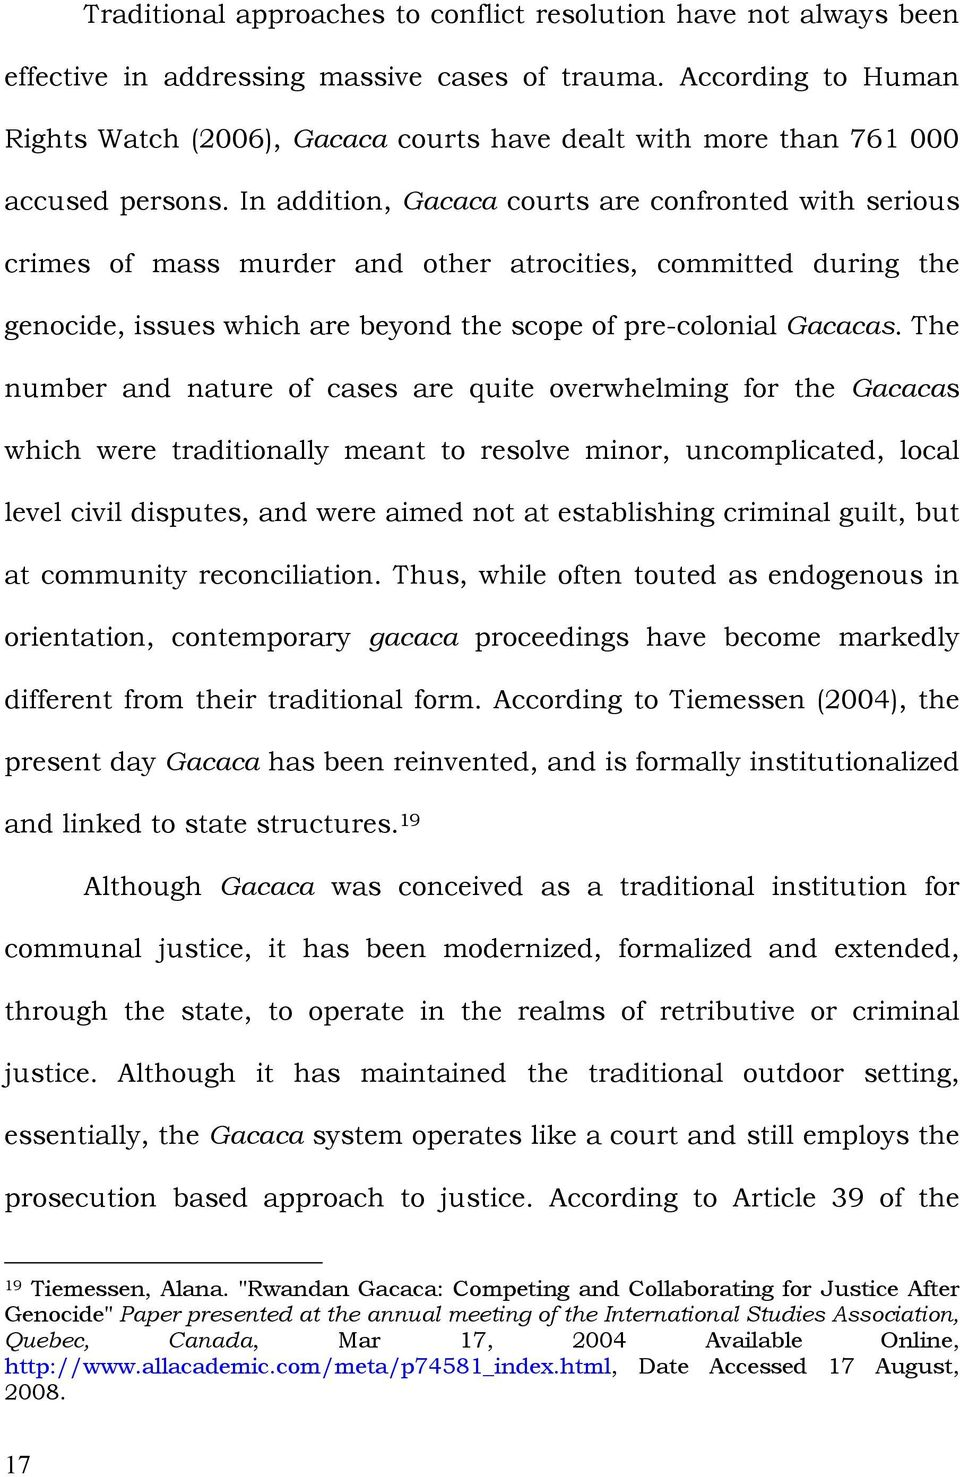 In addition, Gacaca courts are confronted with serious crimes of mass murder and other atrocities, committed during the genocide, issues which are beyond the scope of pre-colonial Gacacas.